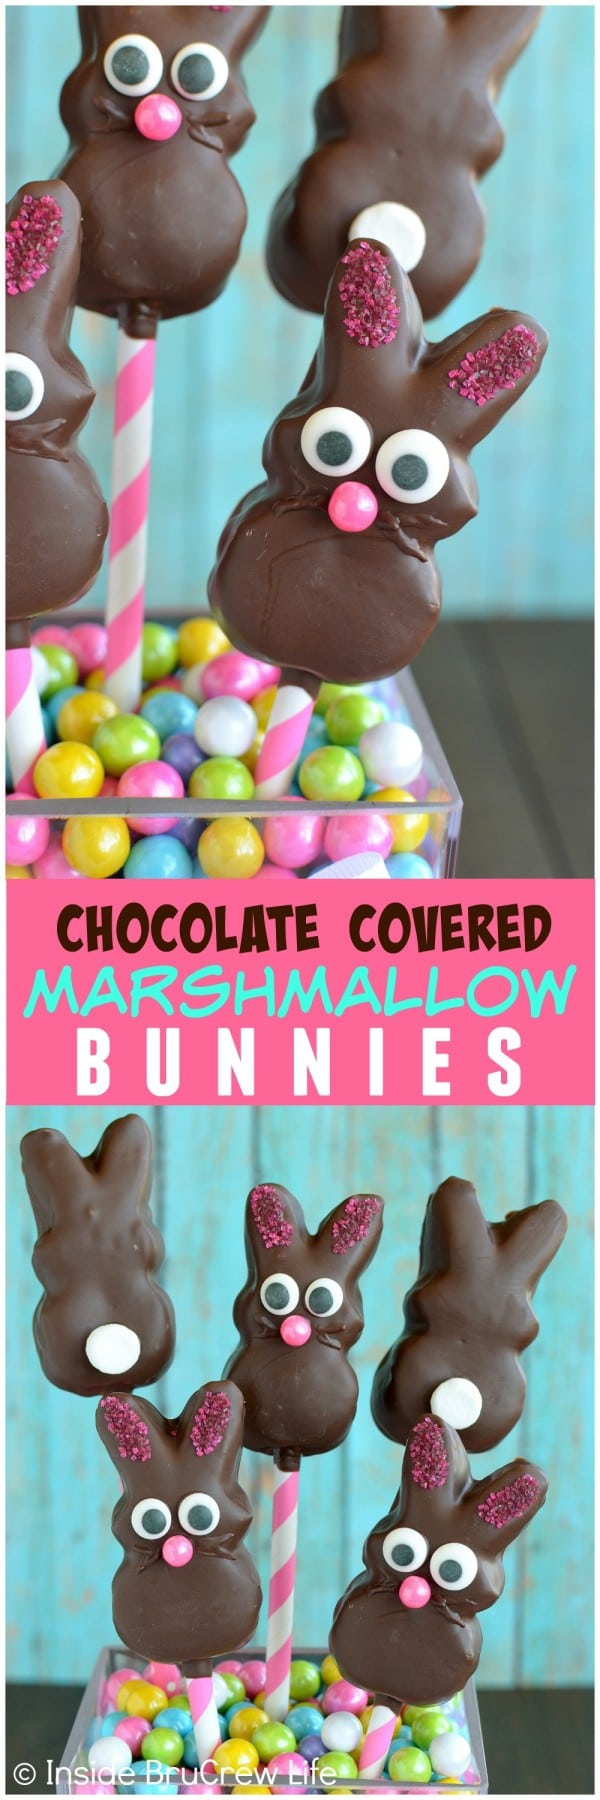 Chocolate Covered Marshmallow Bunnies - dipping marshmallow bunnies in chocolate and adding fun faces with sprinkles and candies makes the cutest no bake treat. Easy dessert recipe to share in Easter baskets or dinner parties! #bunnies #chocolate #nobake #easter #marshmallowpeeps #eastertreats #easterbasket #dessert